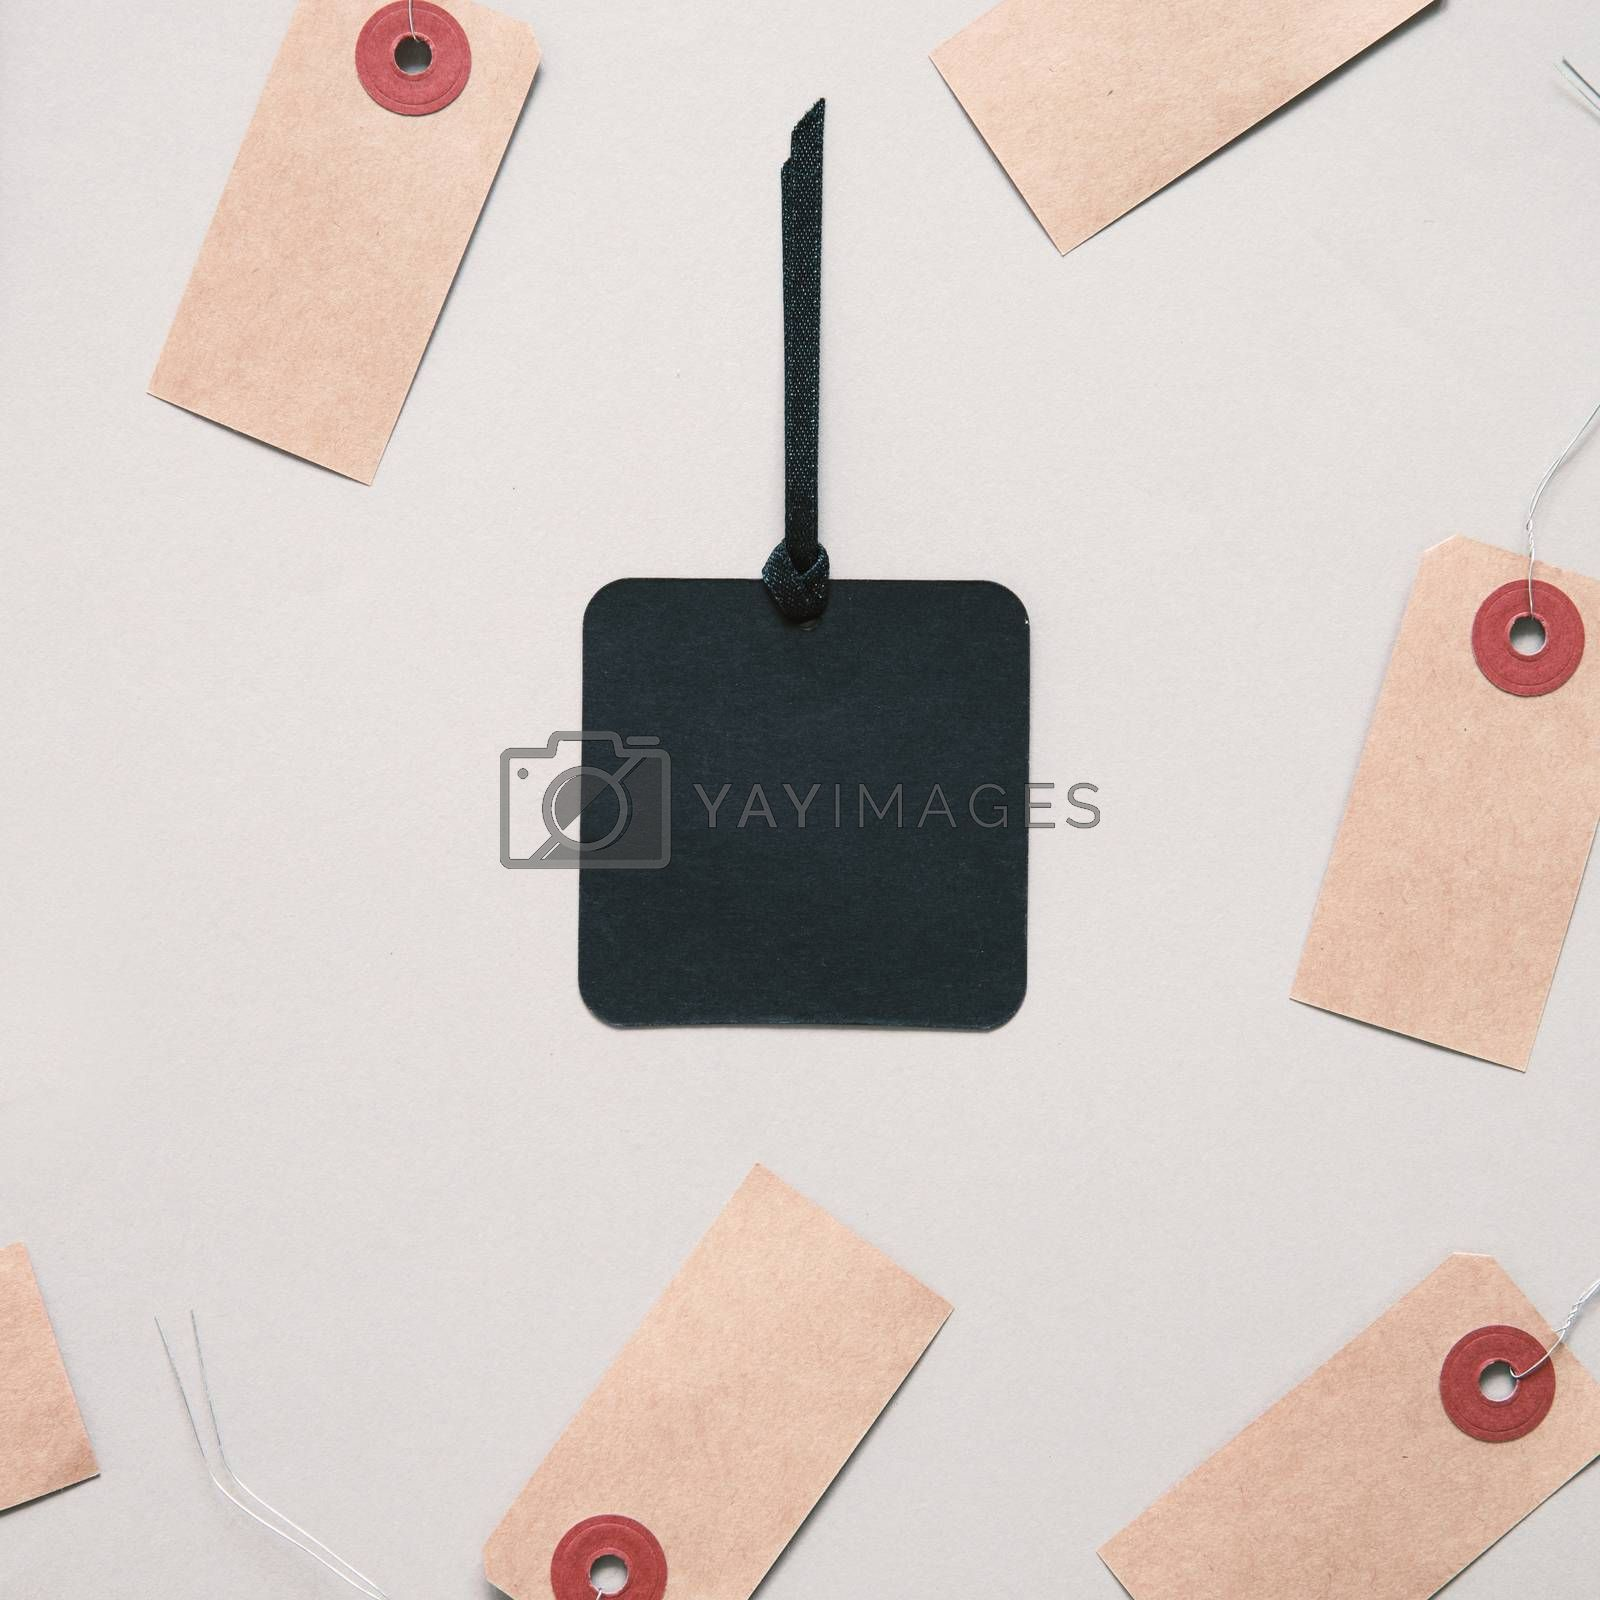 Black friday sale tag on black paper label surrounding with blank tag, shopping concept